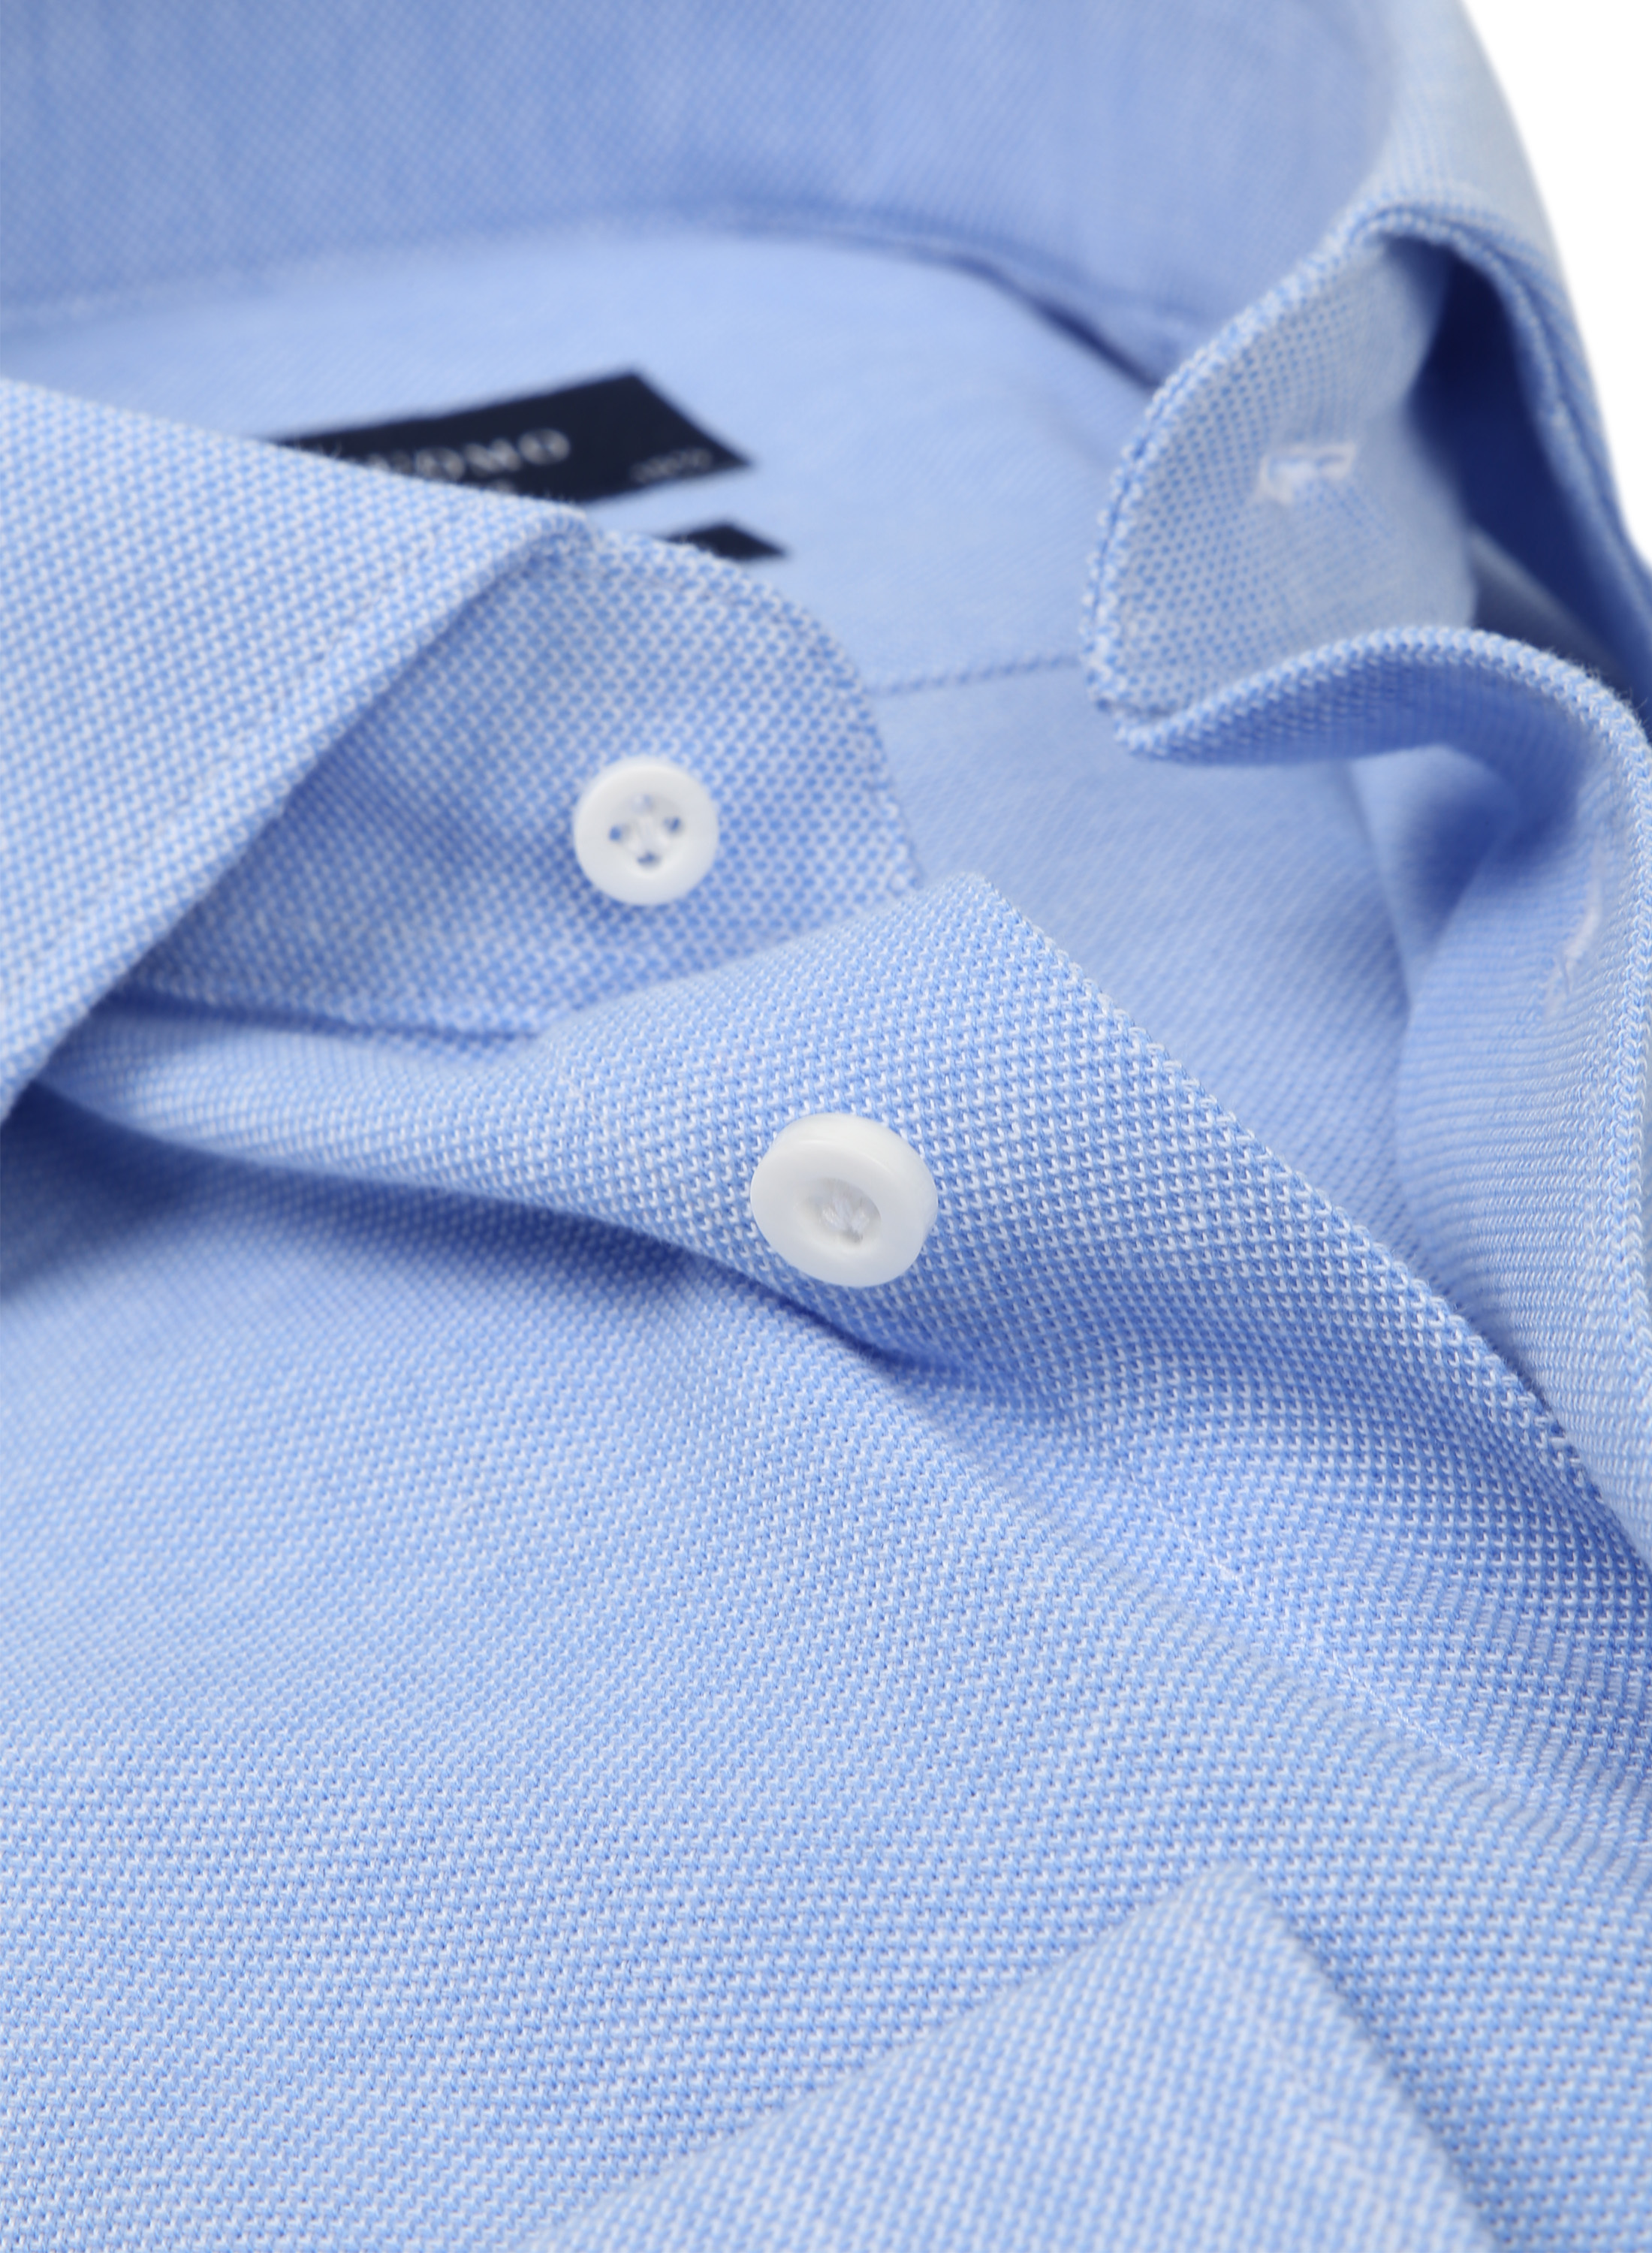 Profuomo Shirt Knitted Slim Fit Blue foto 1